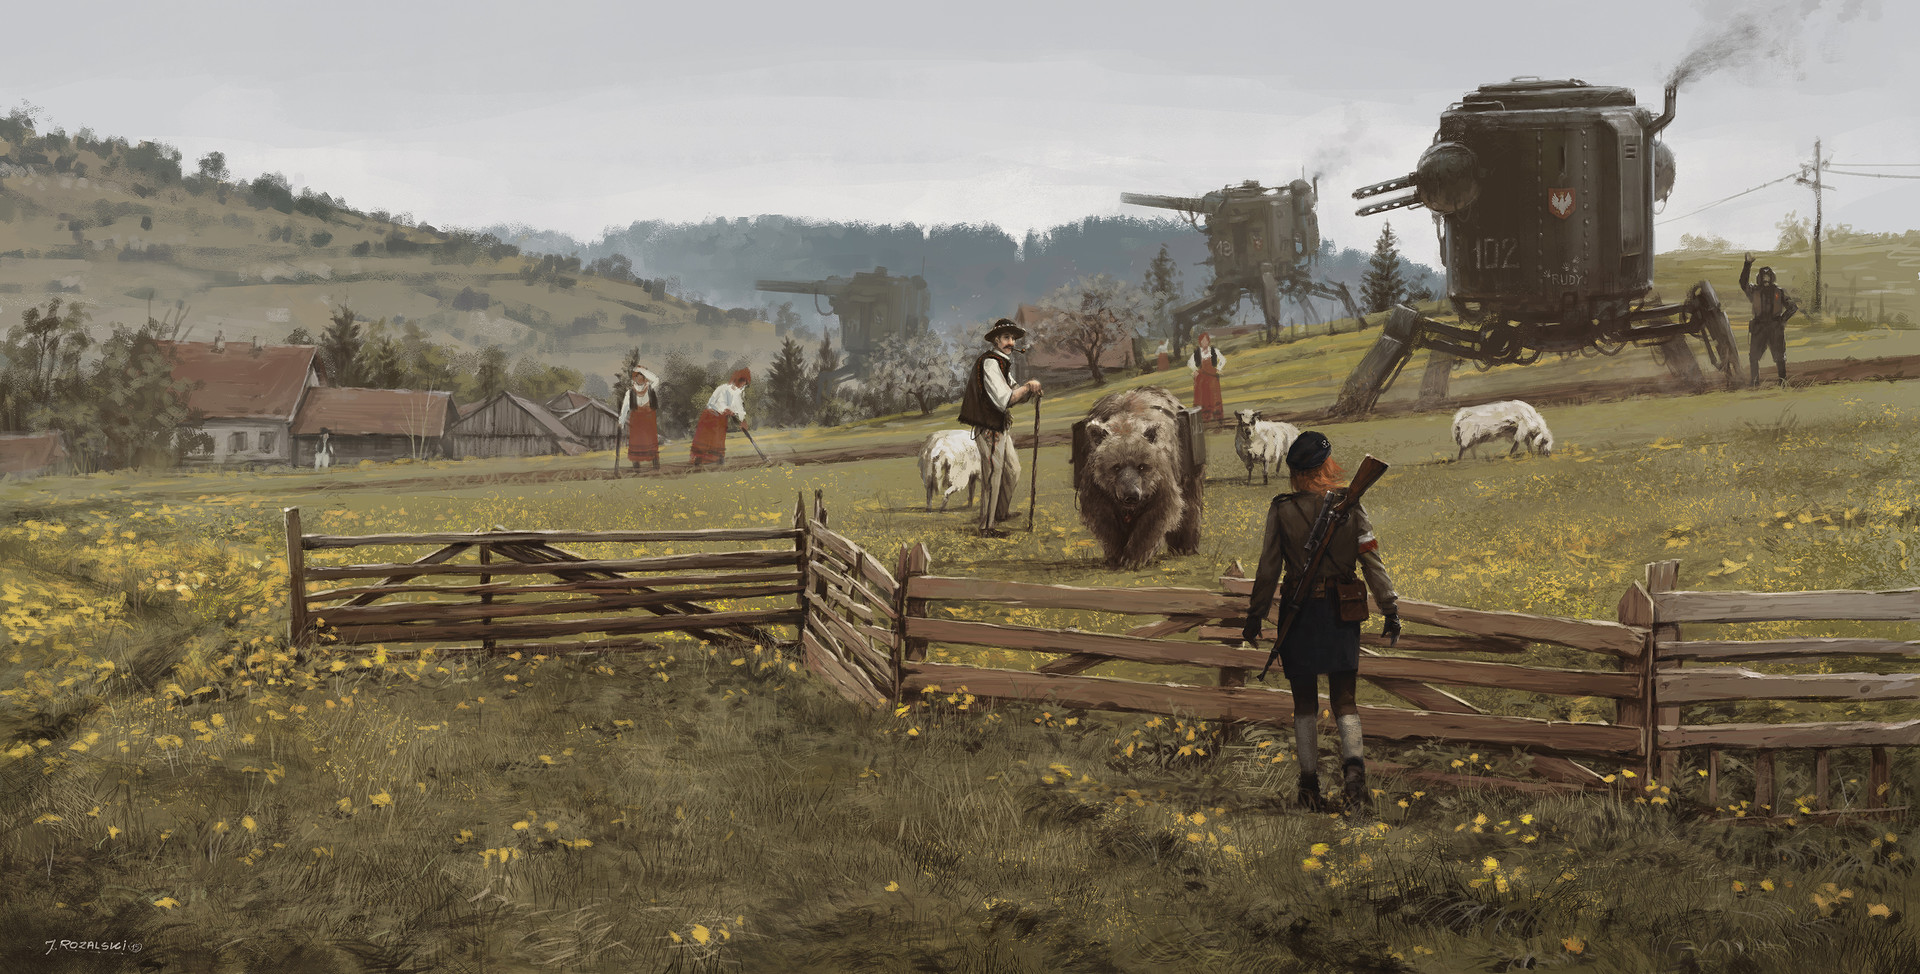 jakub-rozalski-balanced-workforce18102015-s